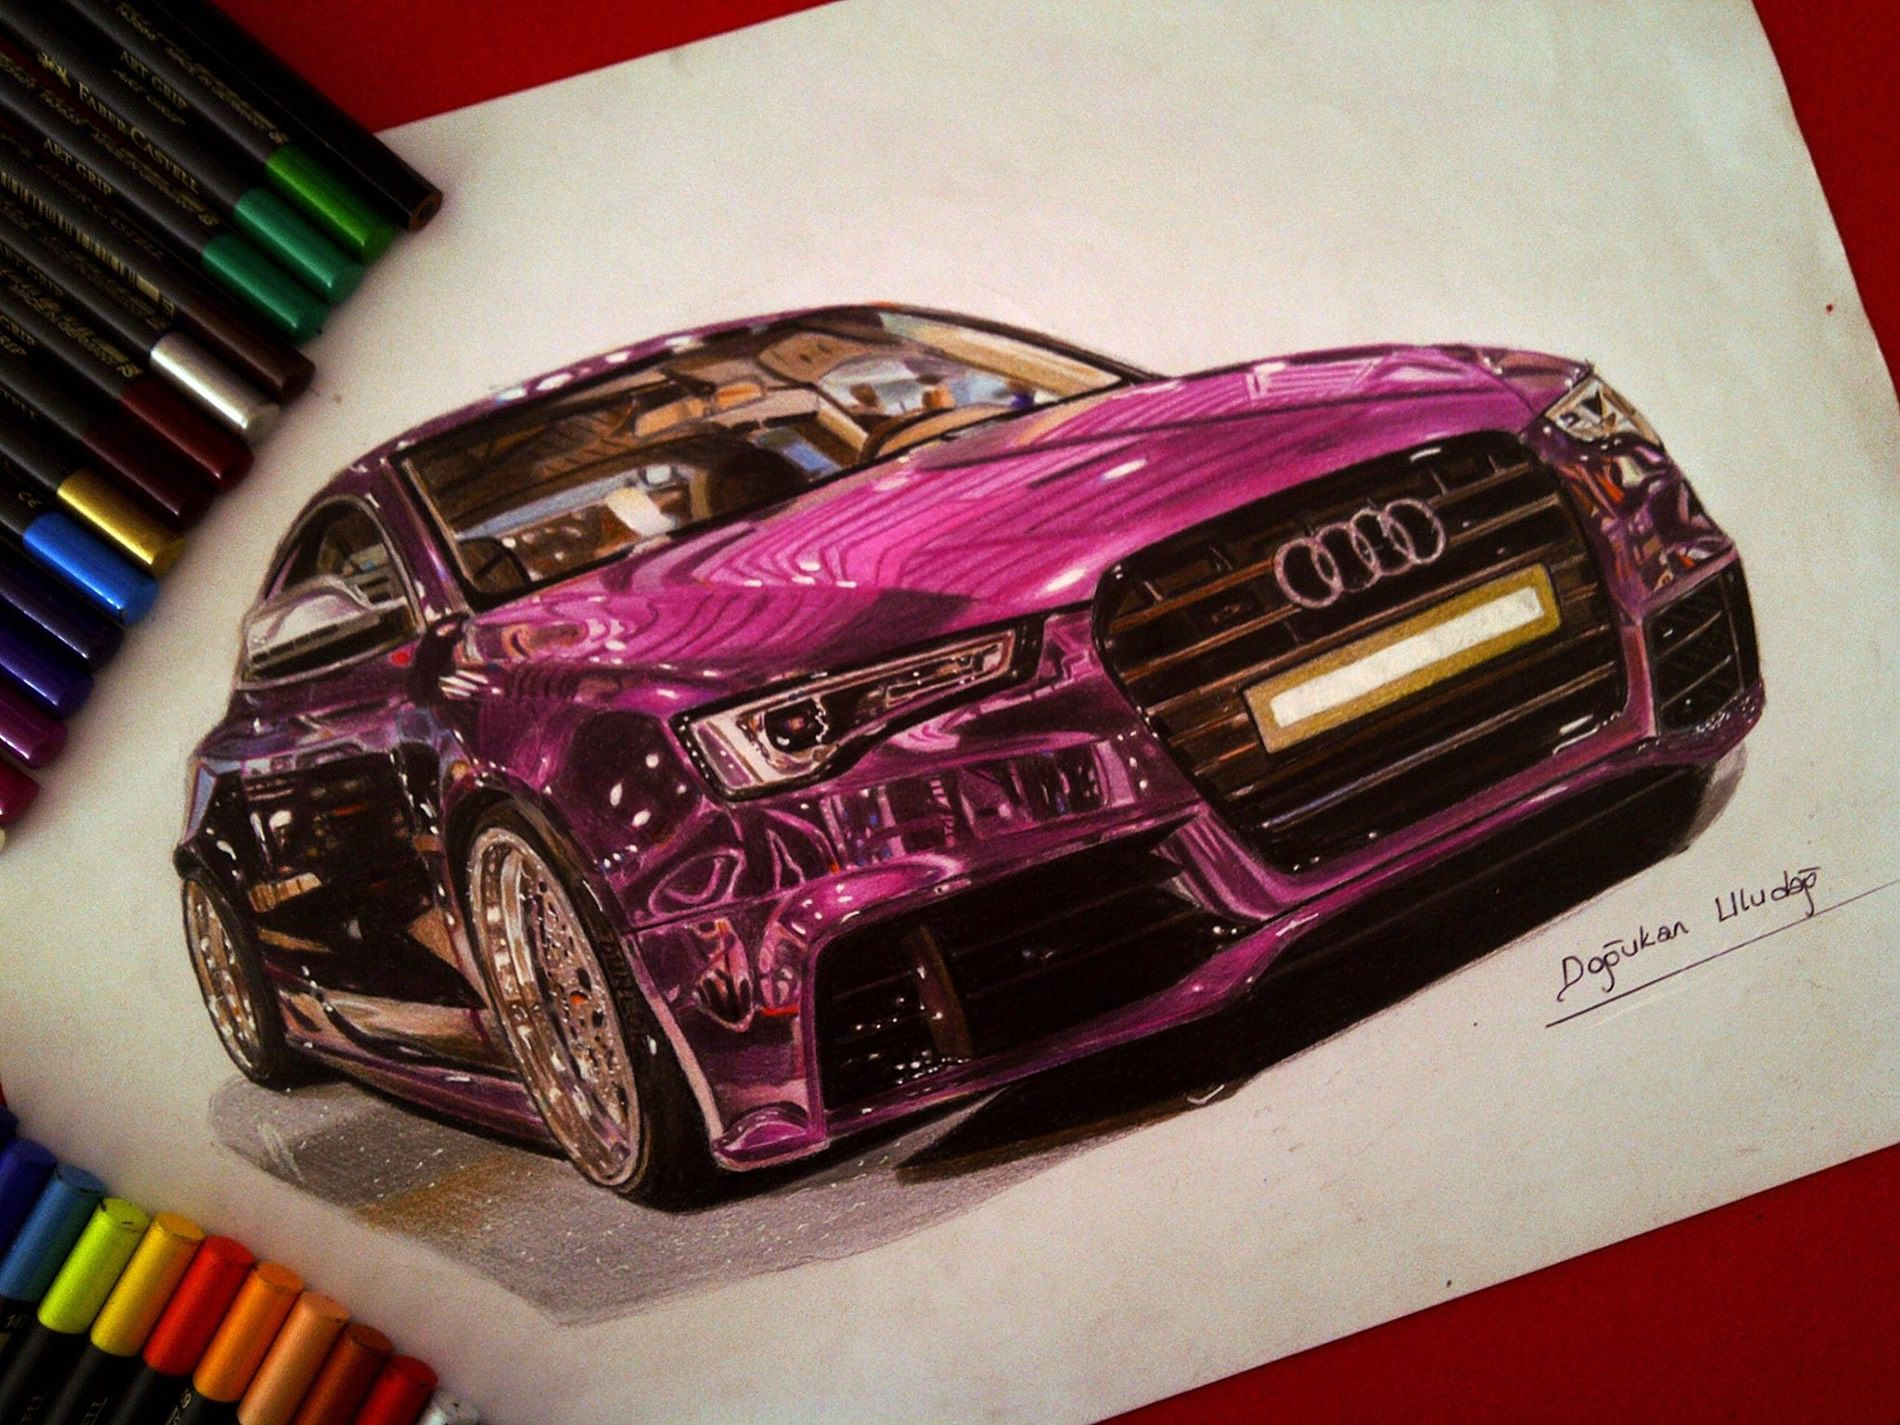 Drawings of Ultra Shiny Automobiles | Illusions, Markers and Reflection